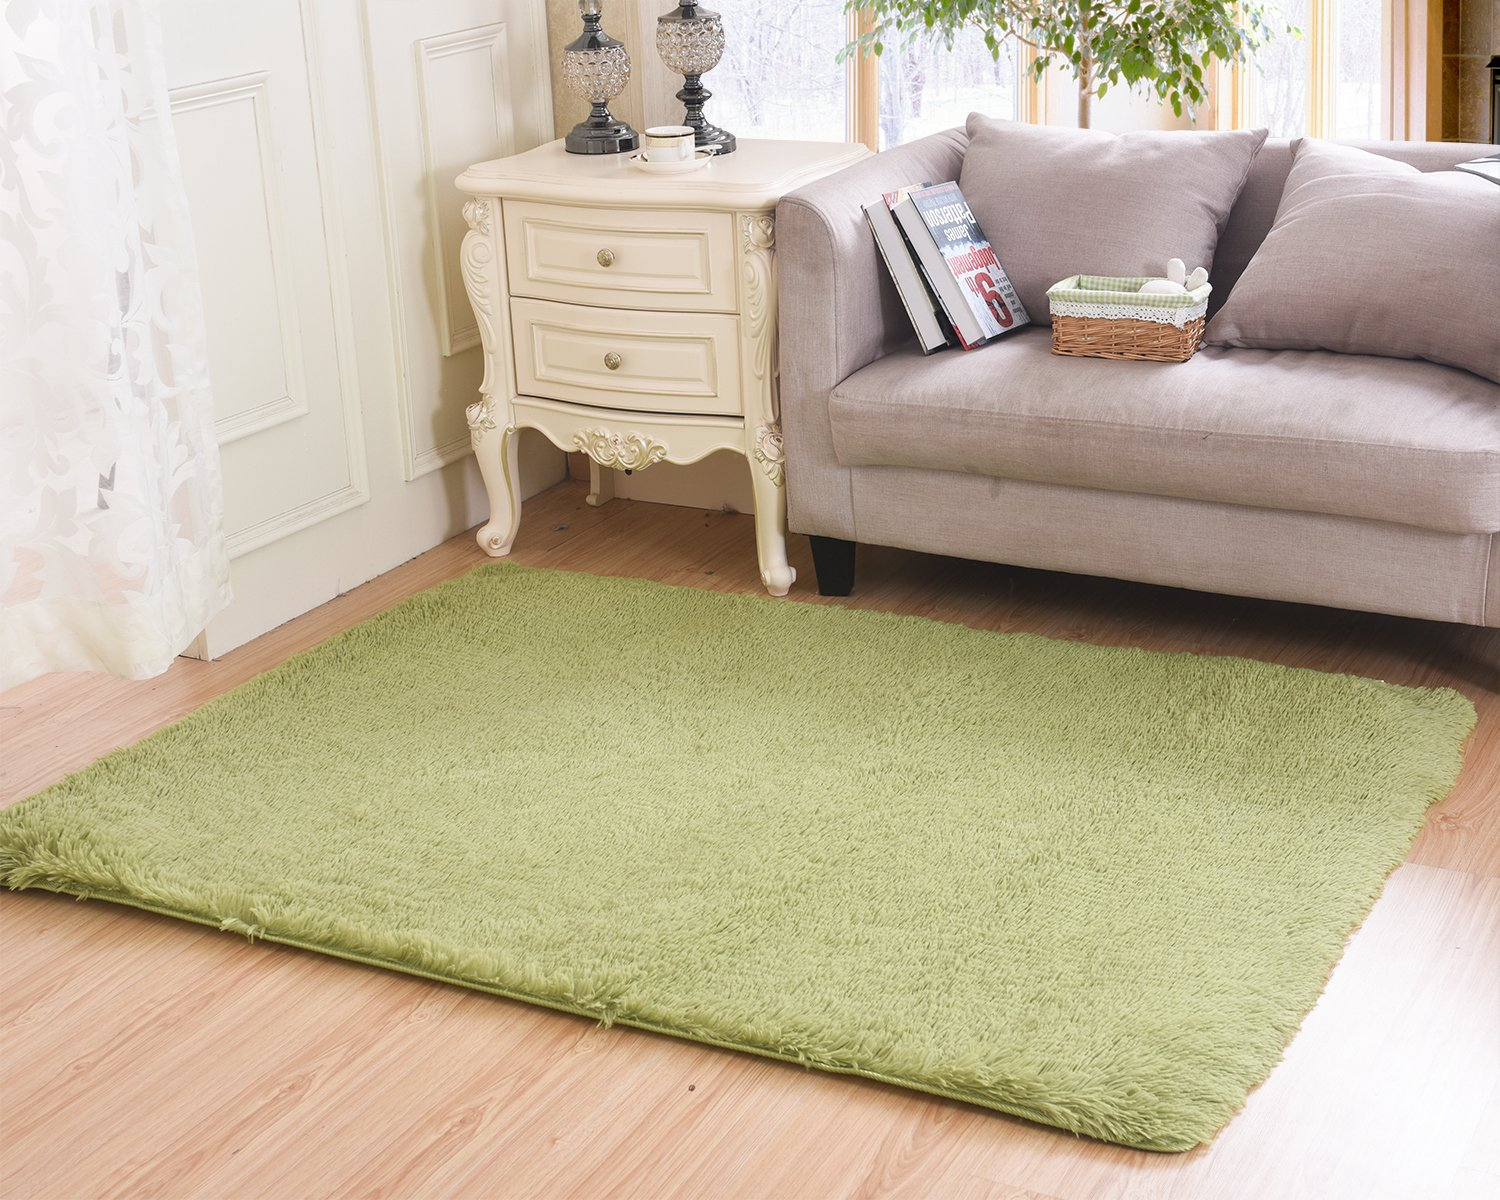 MBIGM Living Room Bedroom Rugs Ultra Soft Modern Area Rugs Thick Shaggy Play Nursery Rug Non-Slip Carpet Pad Living Room Bedroom 4 Feet 5.2 Feet, Beige COMINHKR070935